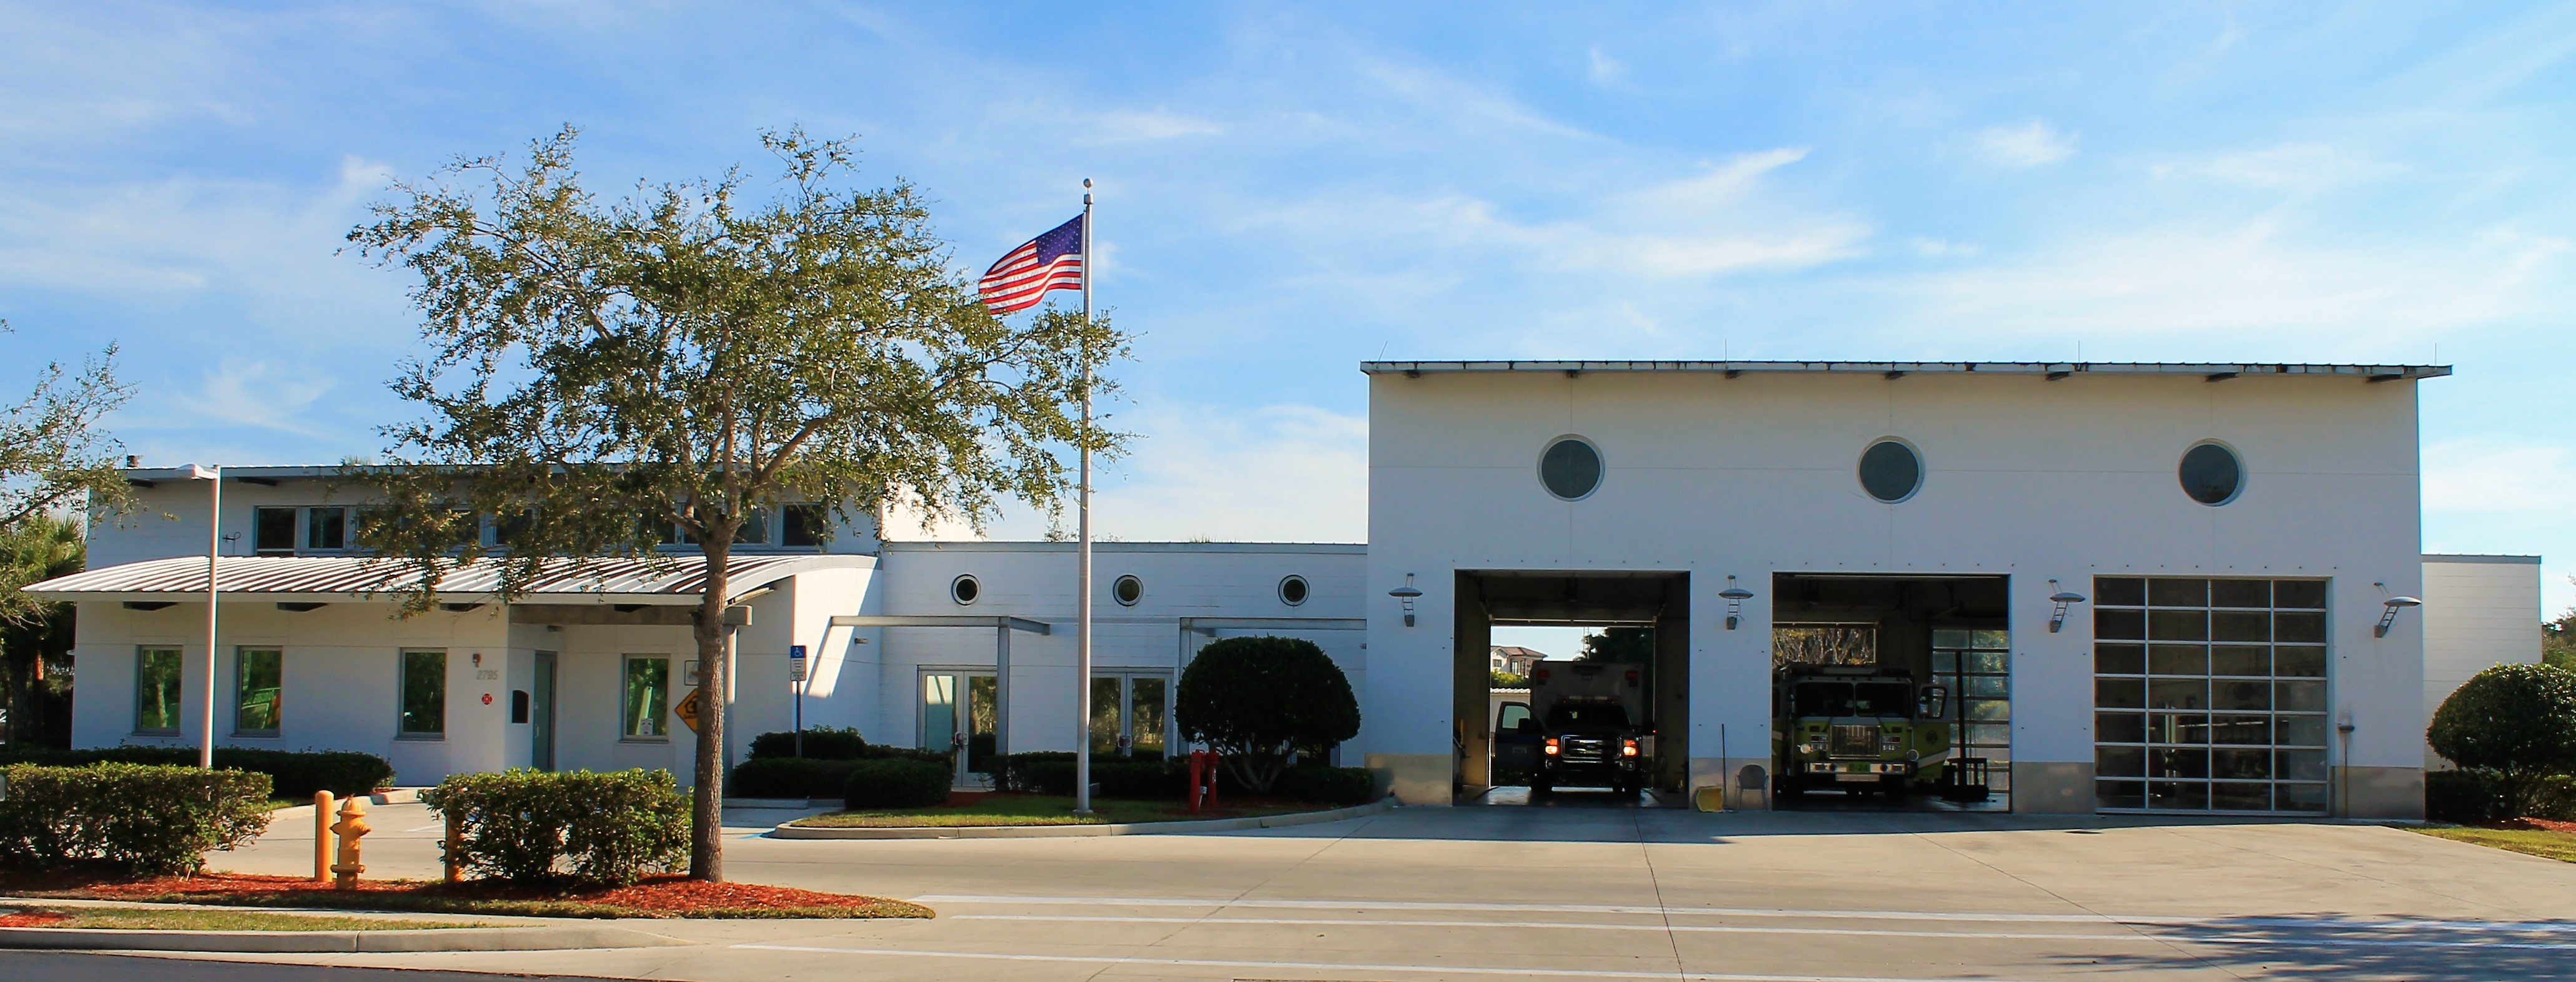 North Collier Fire & Rescue Station 47